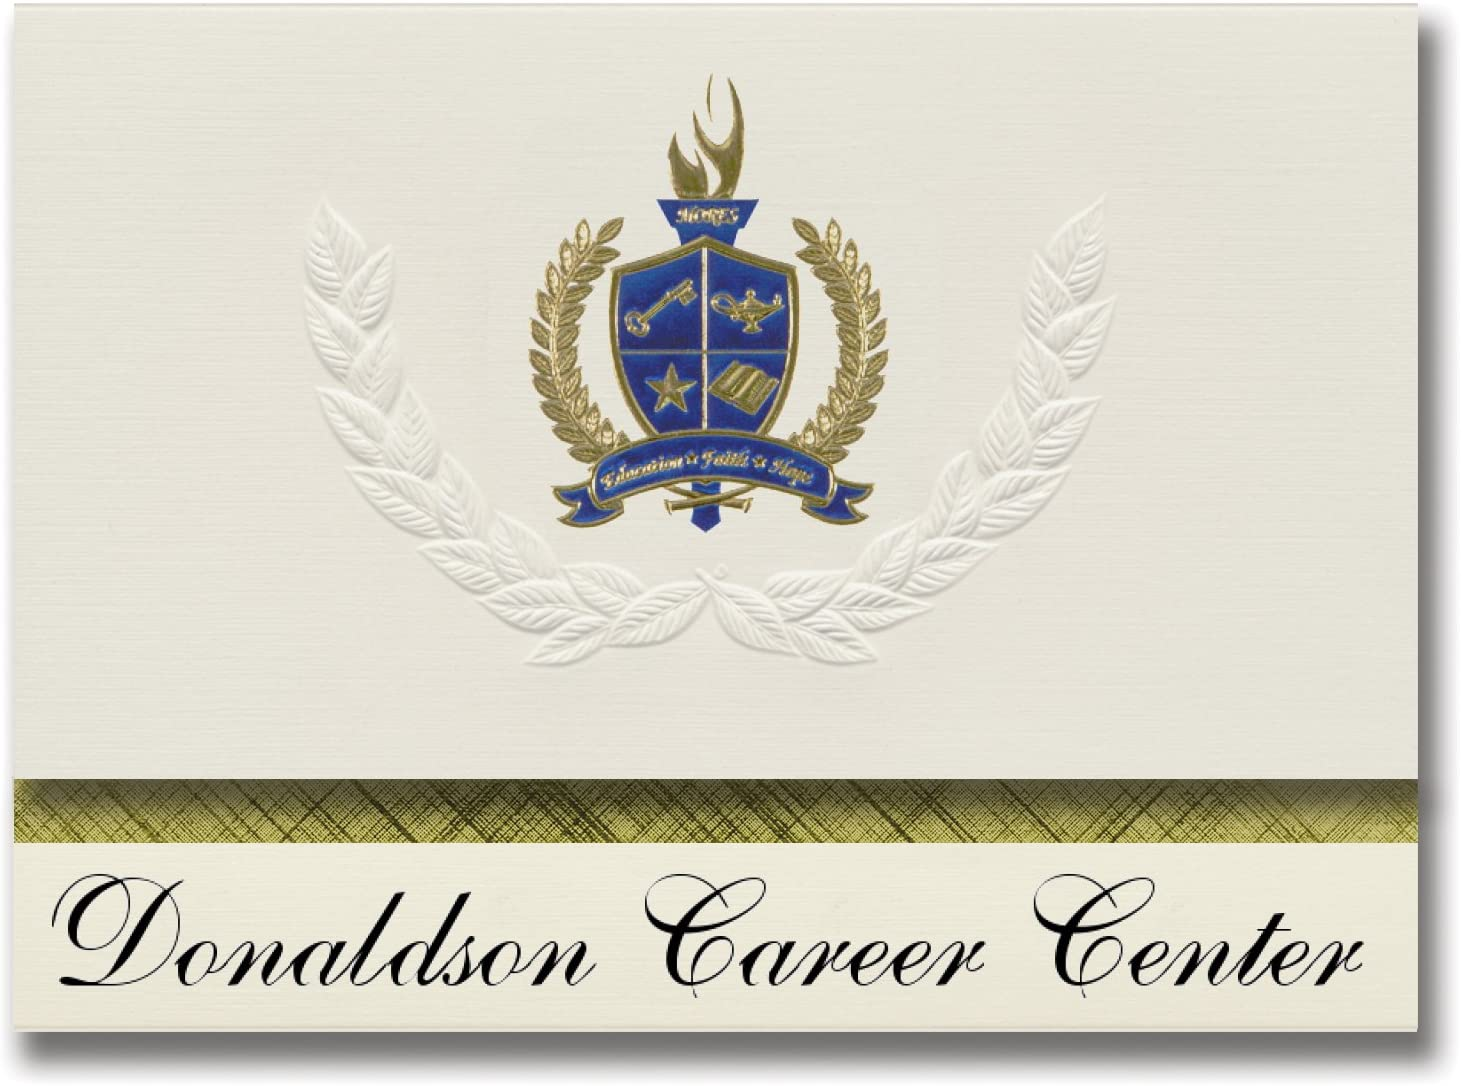 Signature Announcements Donaldson Career Center (Greenville, SC) Graduation Announcements, Presidential style, Elite package of 25 with Gold & Blue Metallic Foil seal